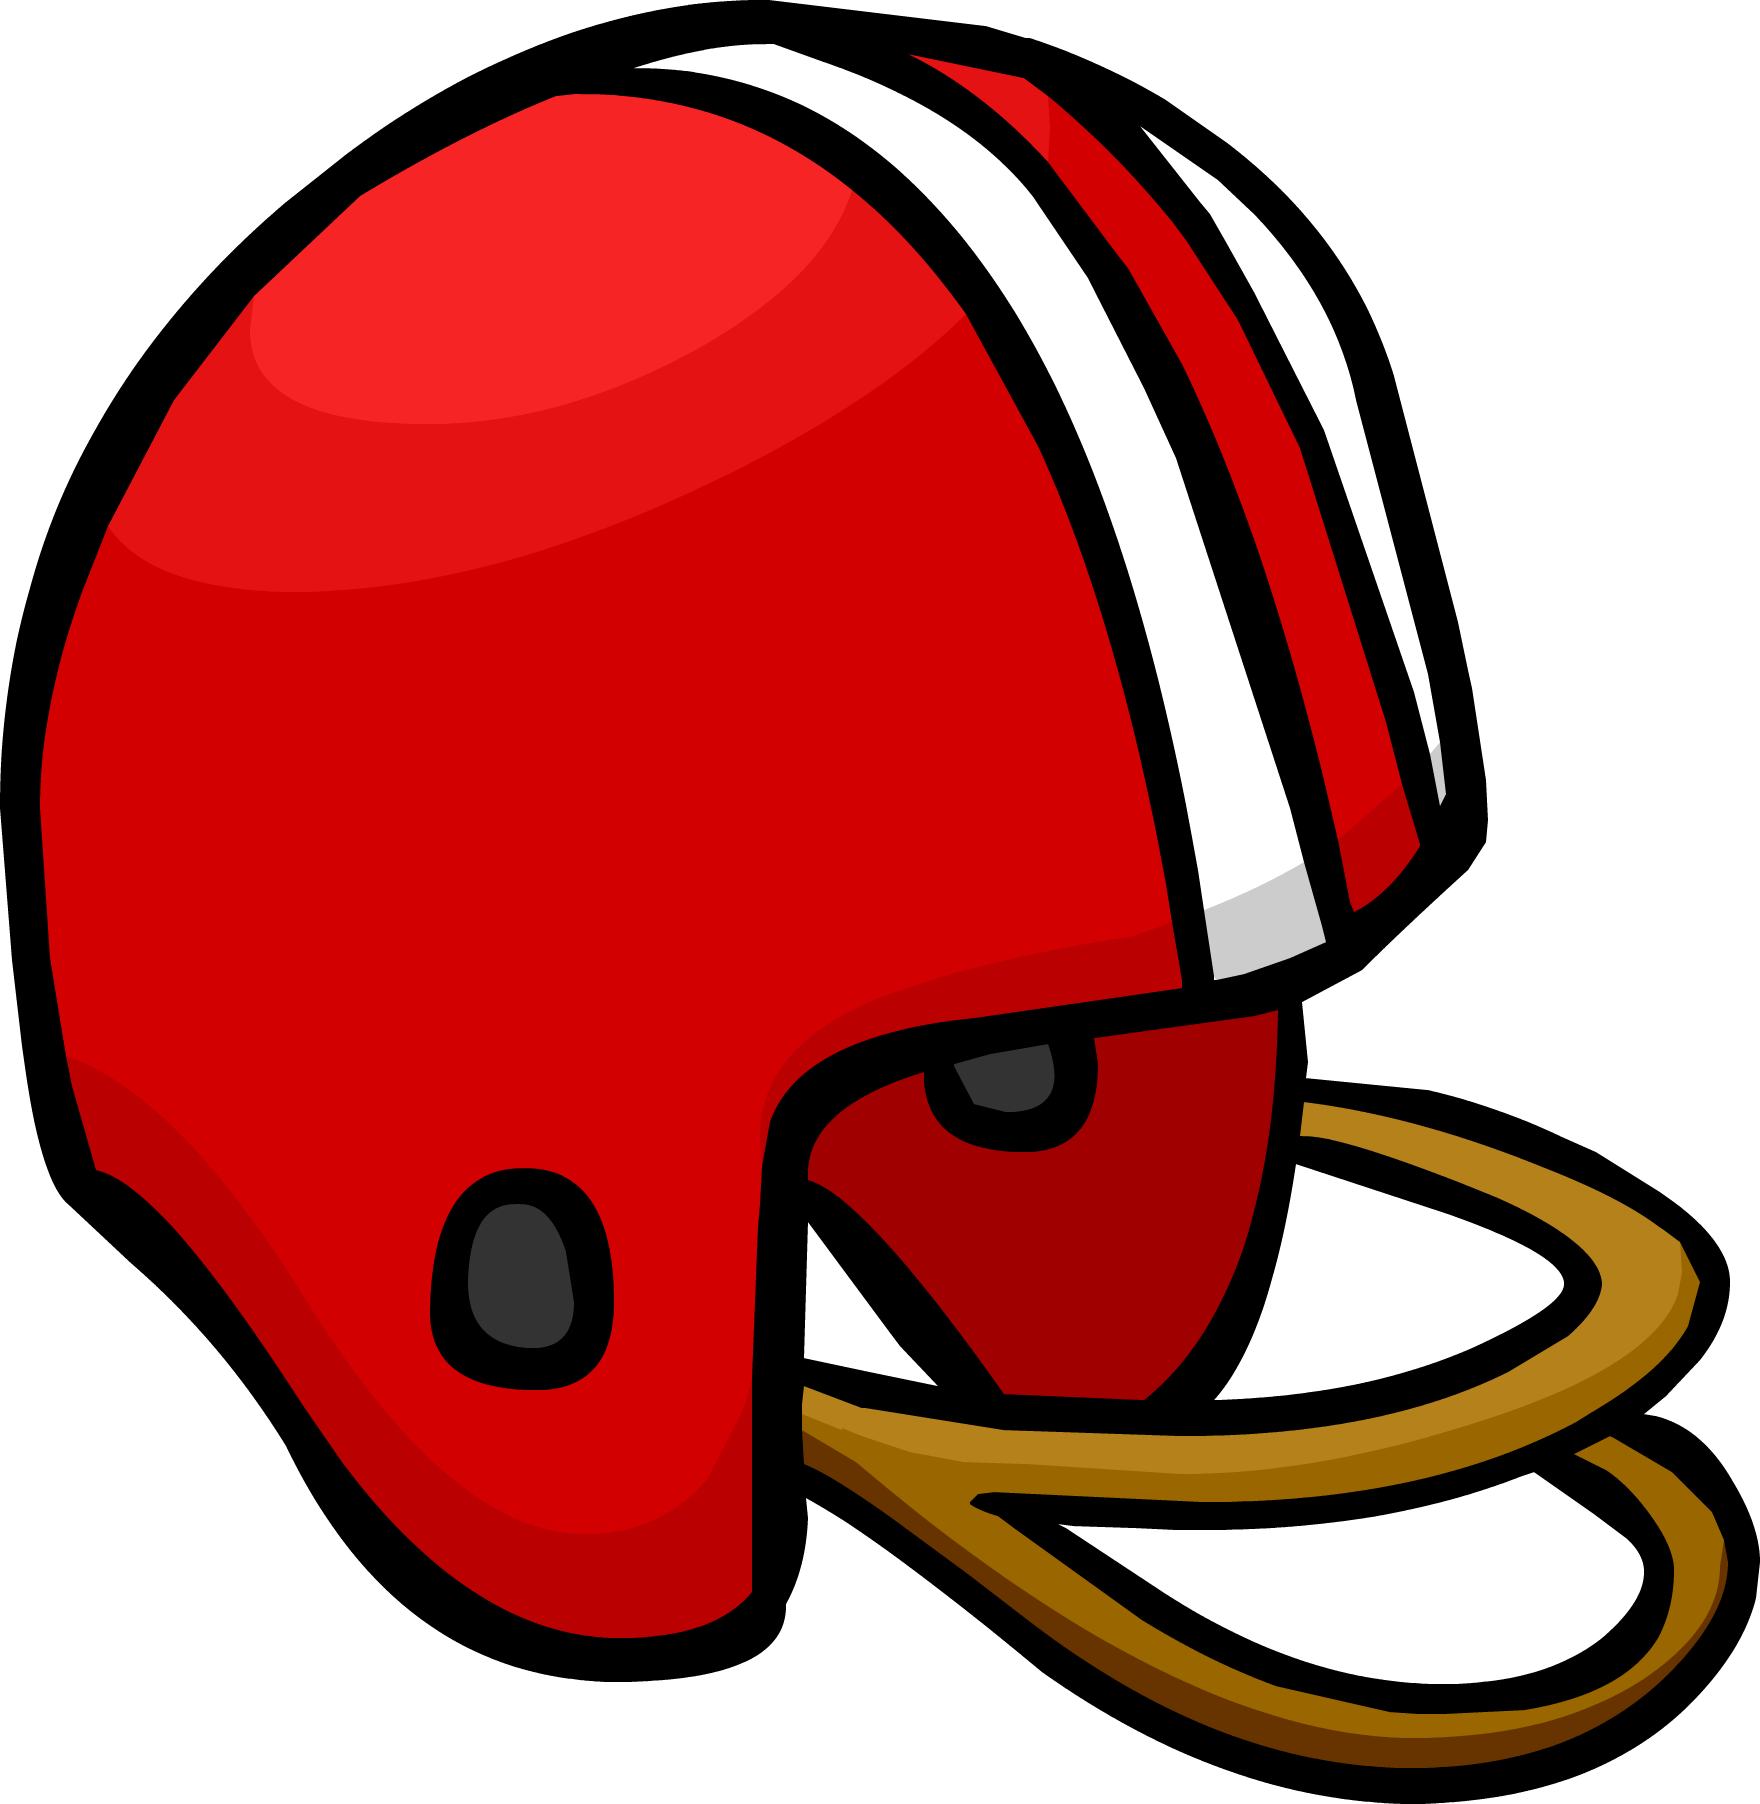 Nfl football helmet clipart image freeuse library Red Football Helmet | Club Penguin Wiki | FANDOM powered by Wikia image freeuse library